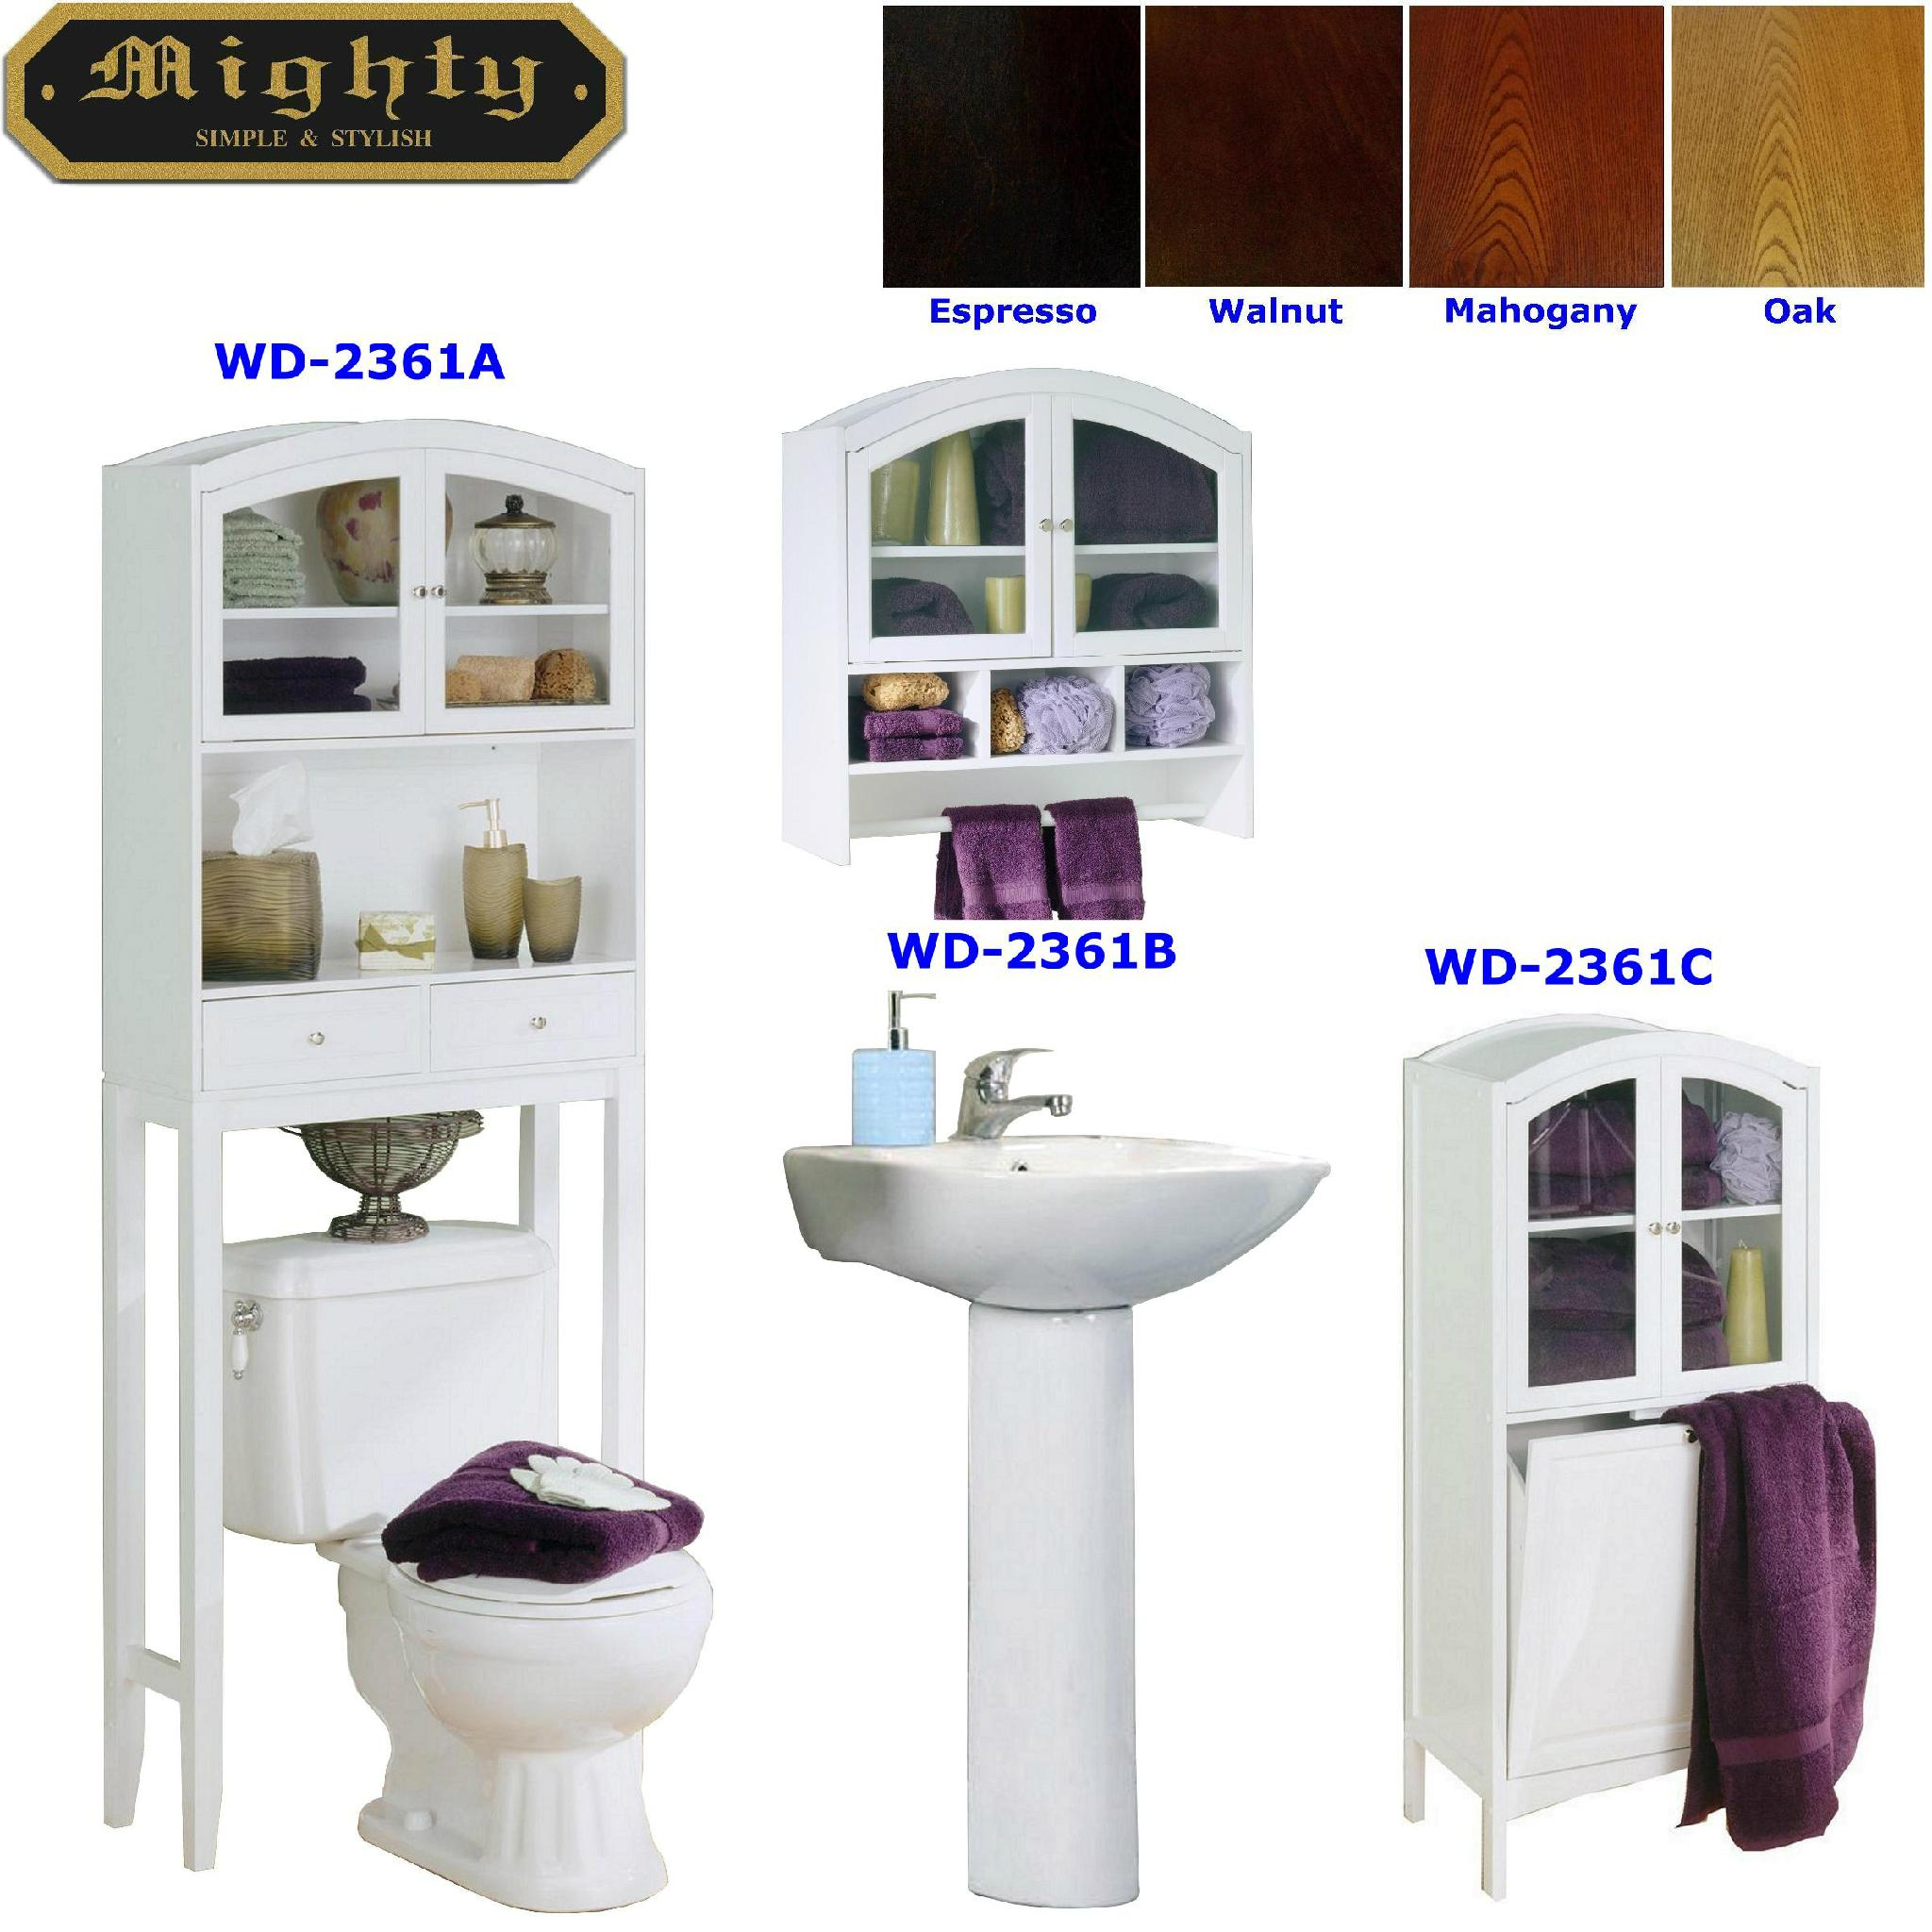 Arch Top Laundry Cabinet & Bathroom Space Saver Over Toilet WD